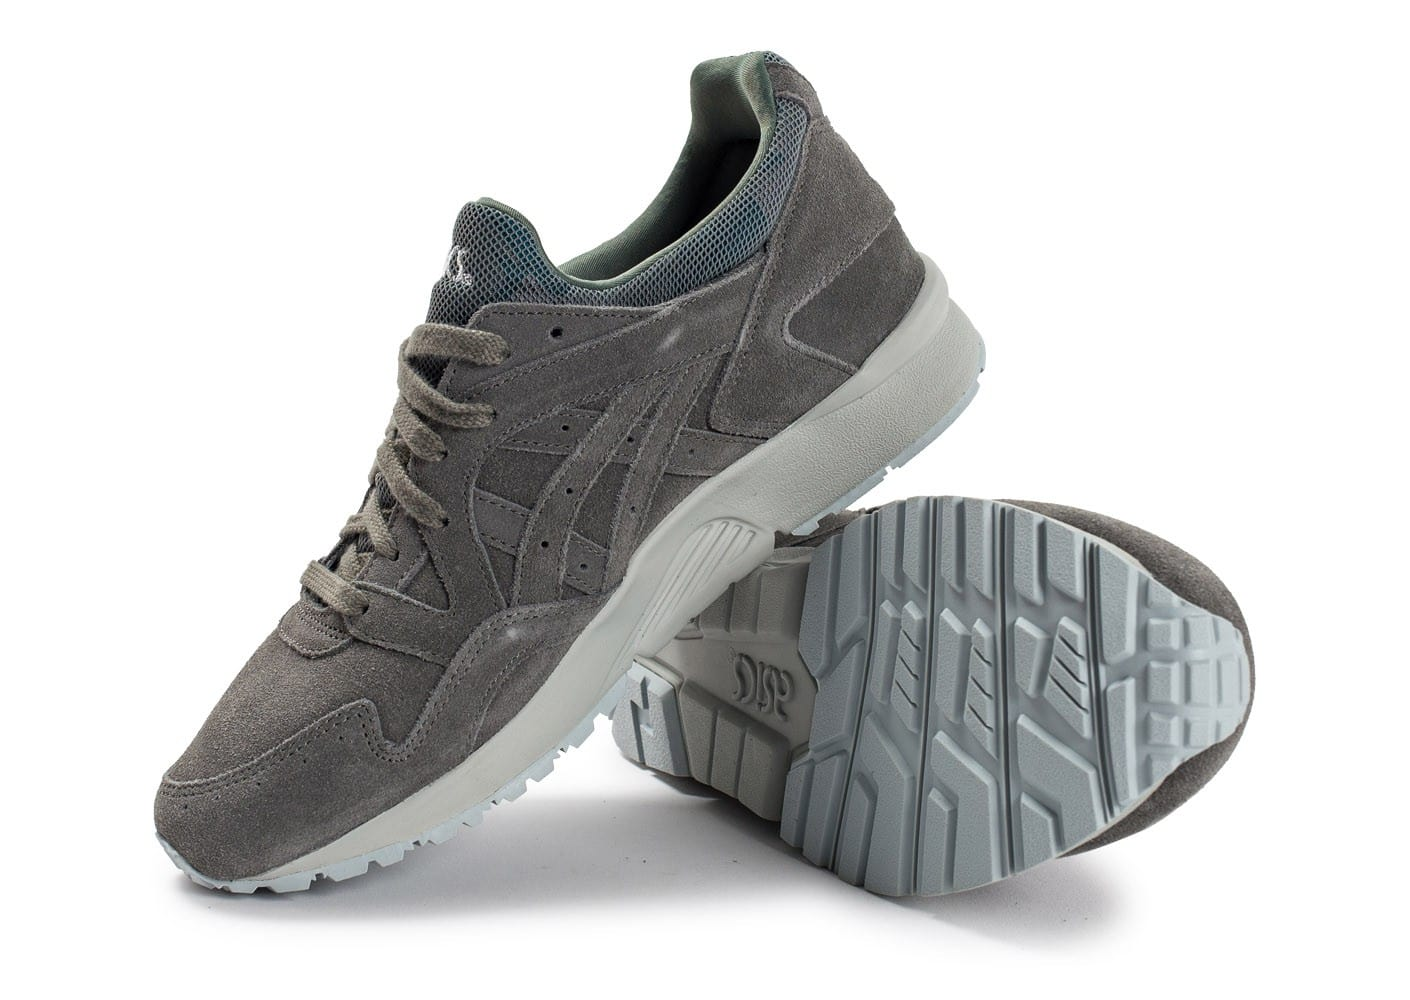 sports shoes 65cfd c369f Gel Asics Chausport Camo Pack Baskets Chaussures Lyte V Kaki Homme dOrrA4qx